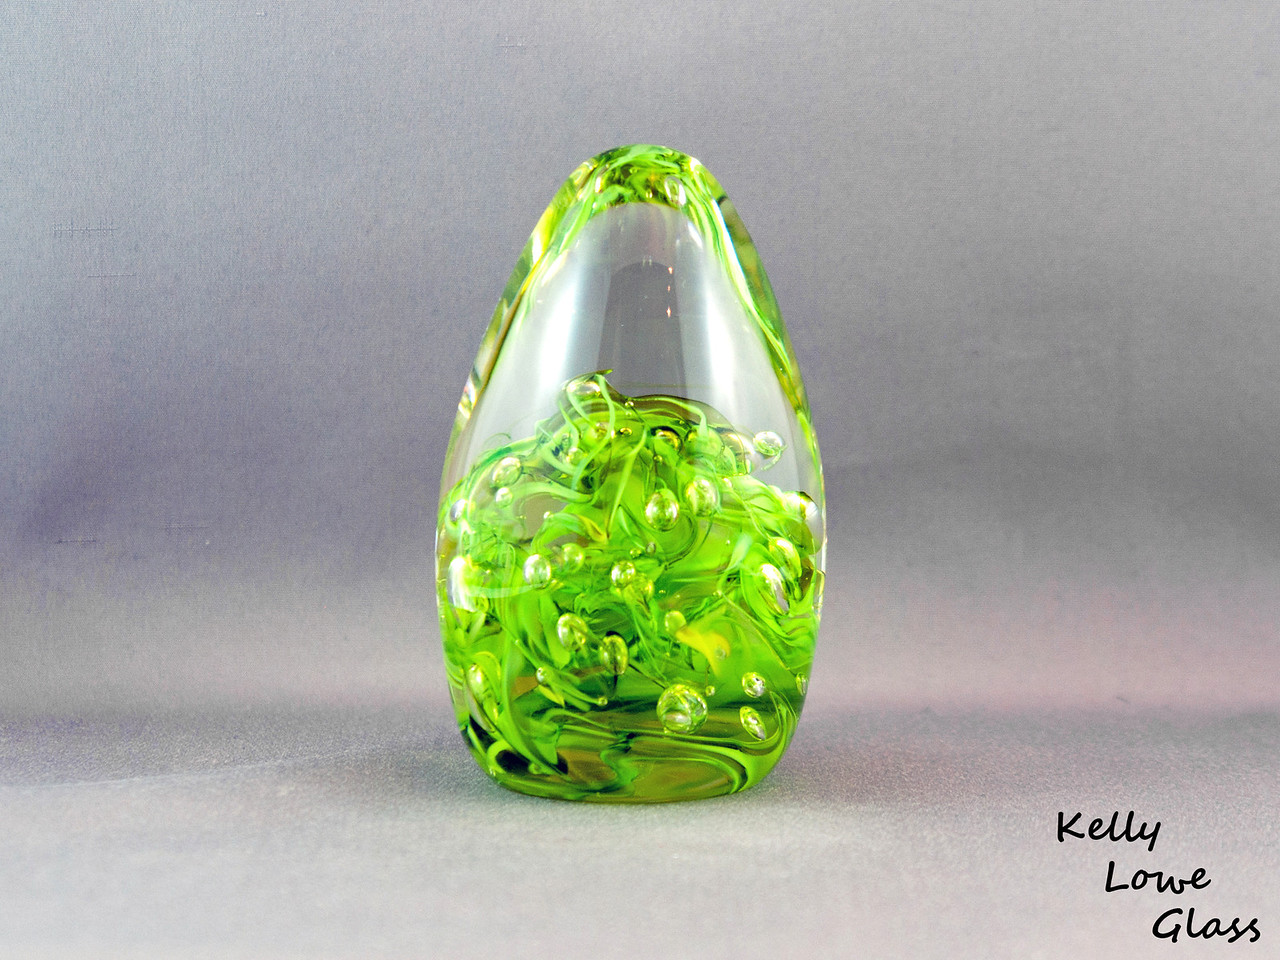 Teardrop Paperweight - Large - Green:  Widest Point: 6.5cm Height: 12cm Weight: Approx 685g.  The pictures included here are of the specific piece for sale.